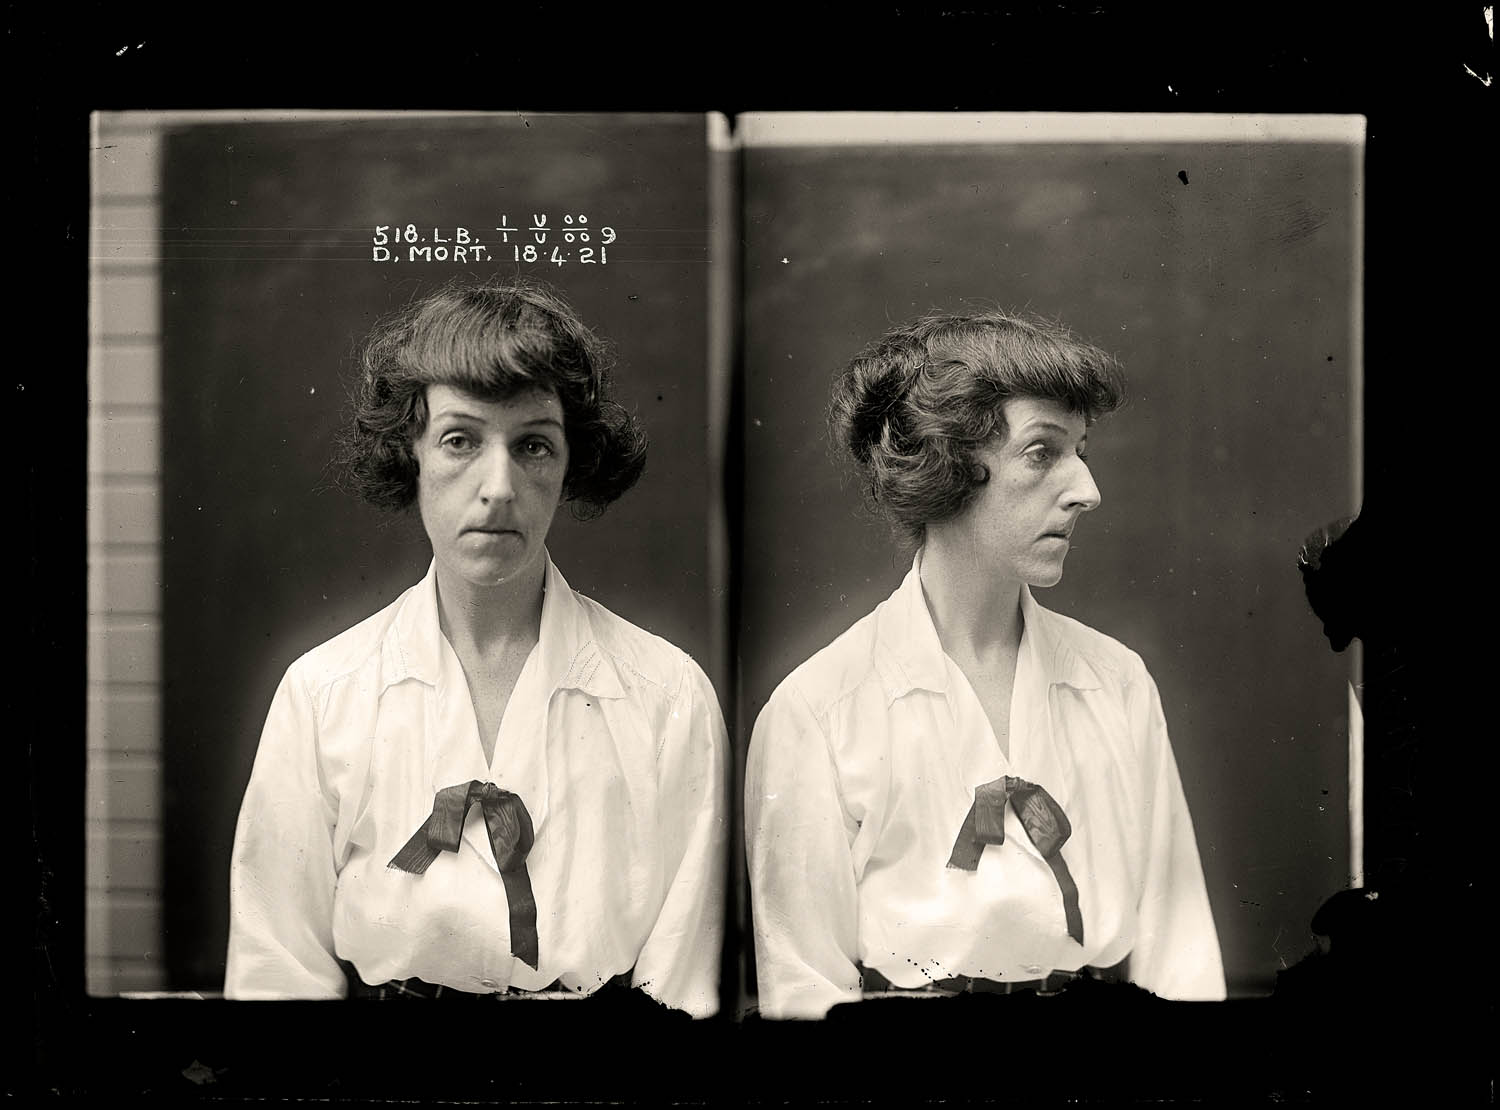 Dorothy Mort, criminal record number 518LB, 18 April 1921. State Reformatory for Women, Long Bay, NSW